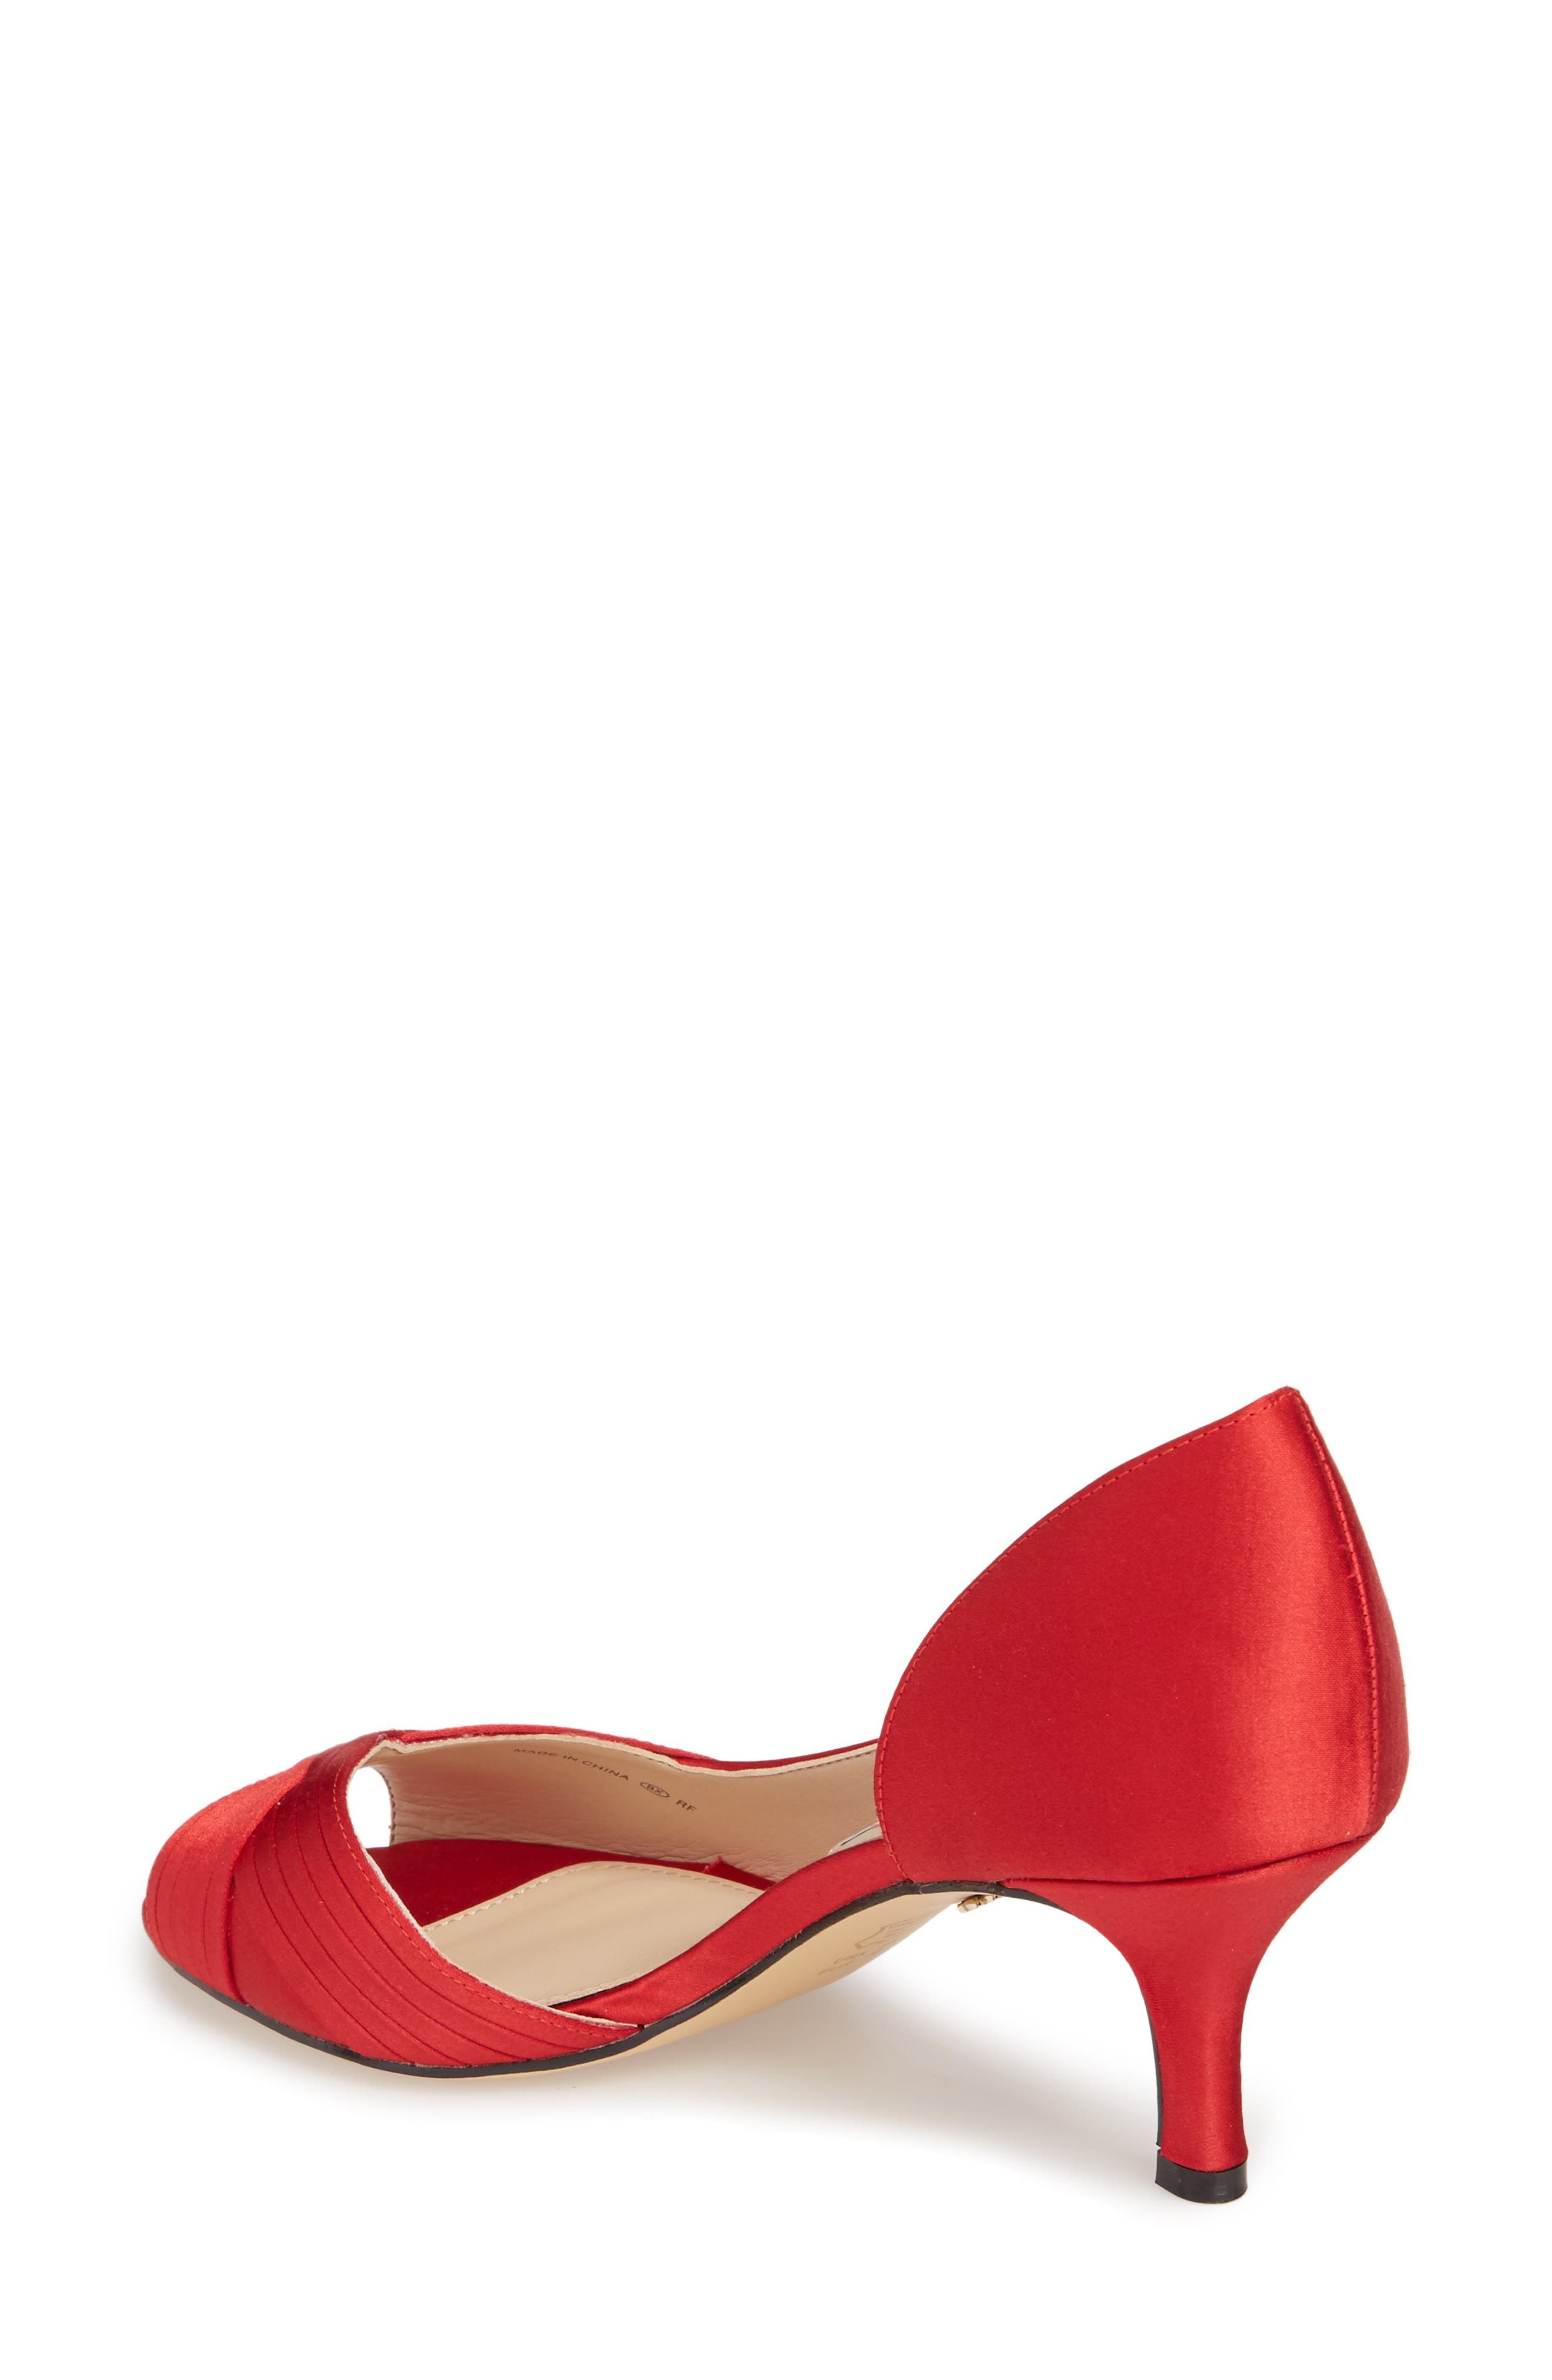 Contesa Open Toe Pump,                             Alternate thumbnail 2, color,                             RED SATIN